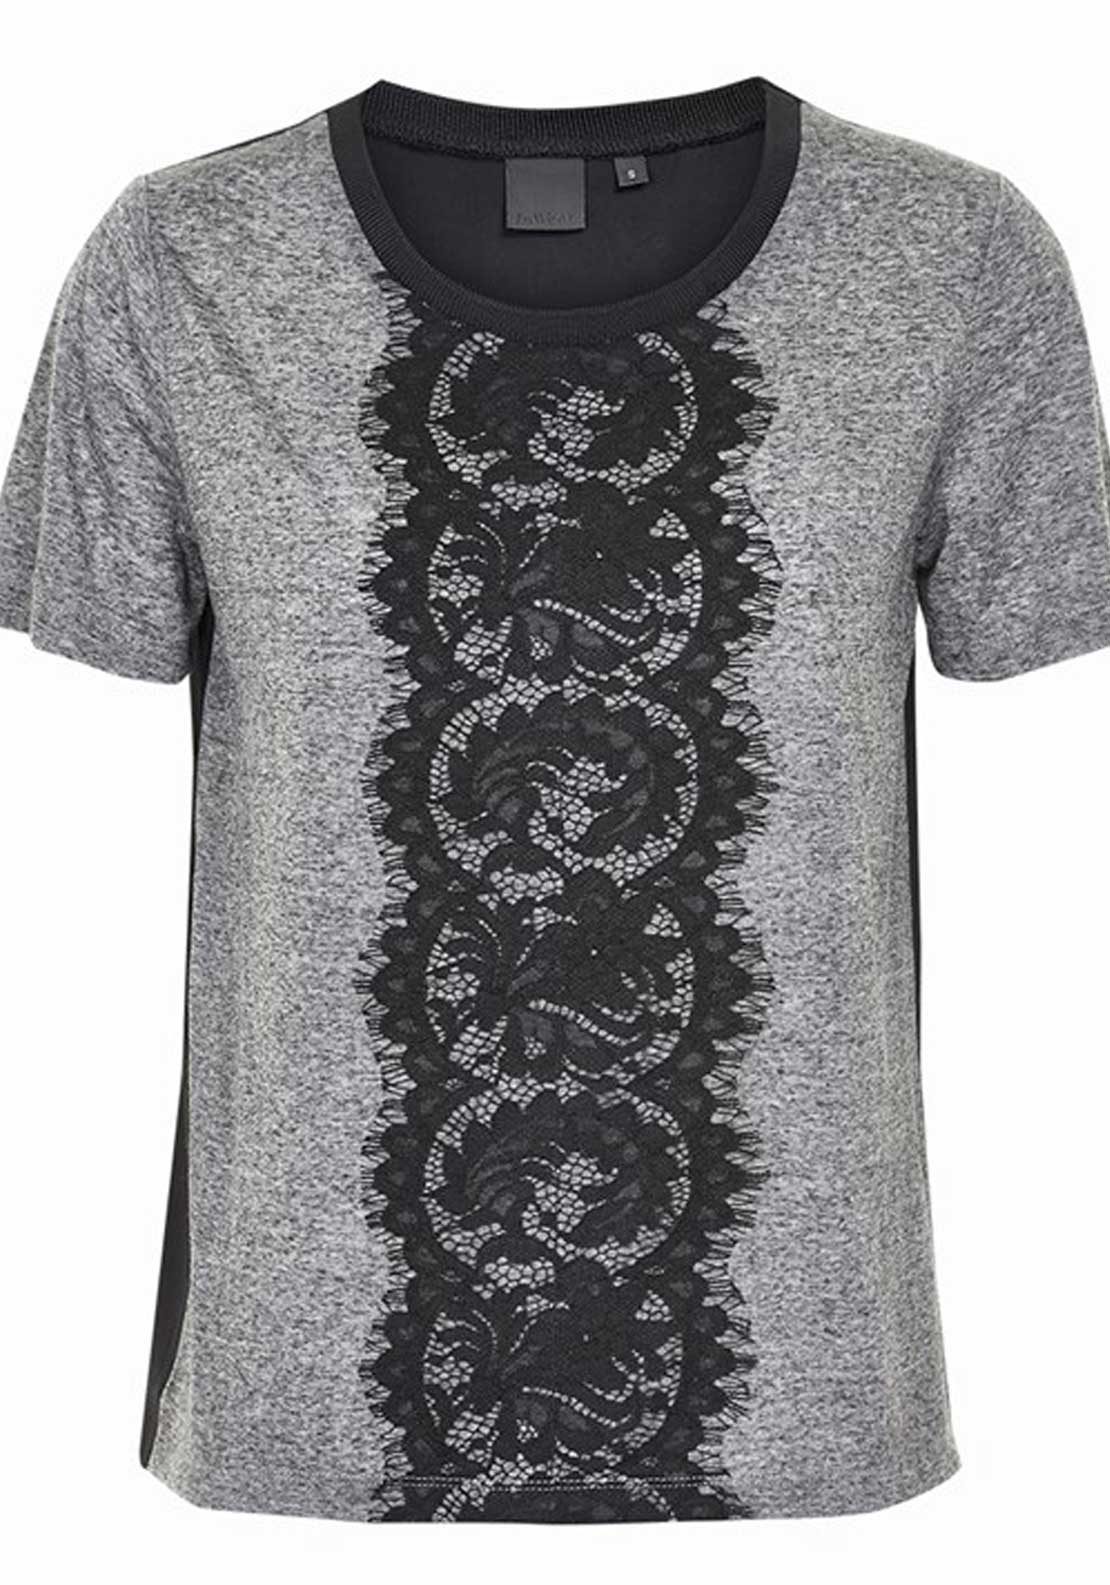 Inwear Safina Lace Trim Short Sleeve T-Shirt, Grey